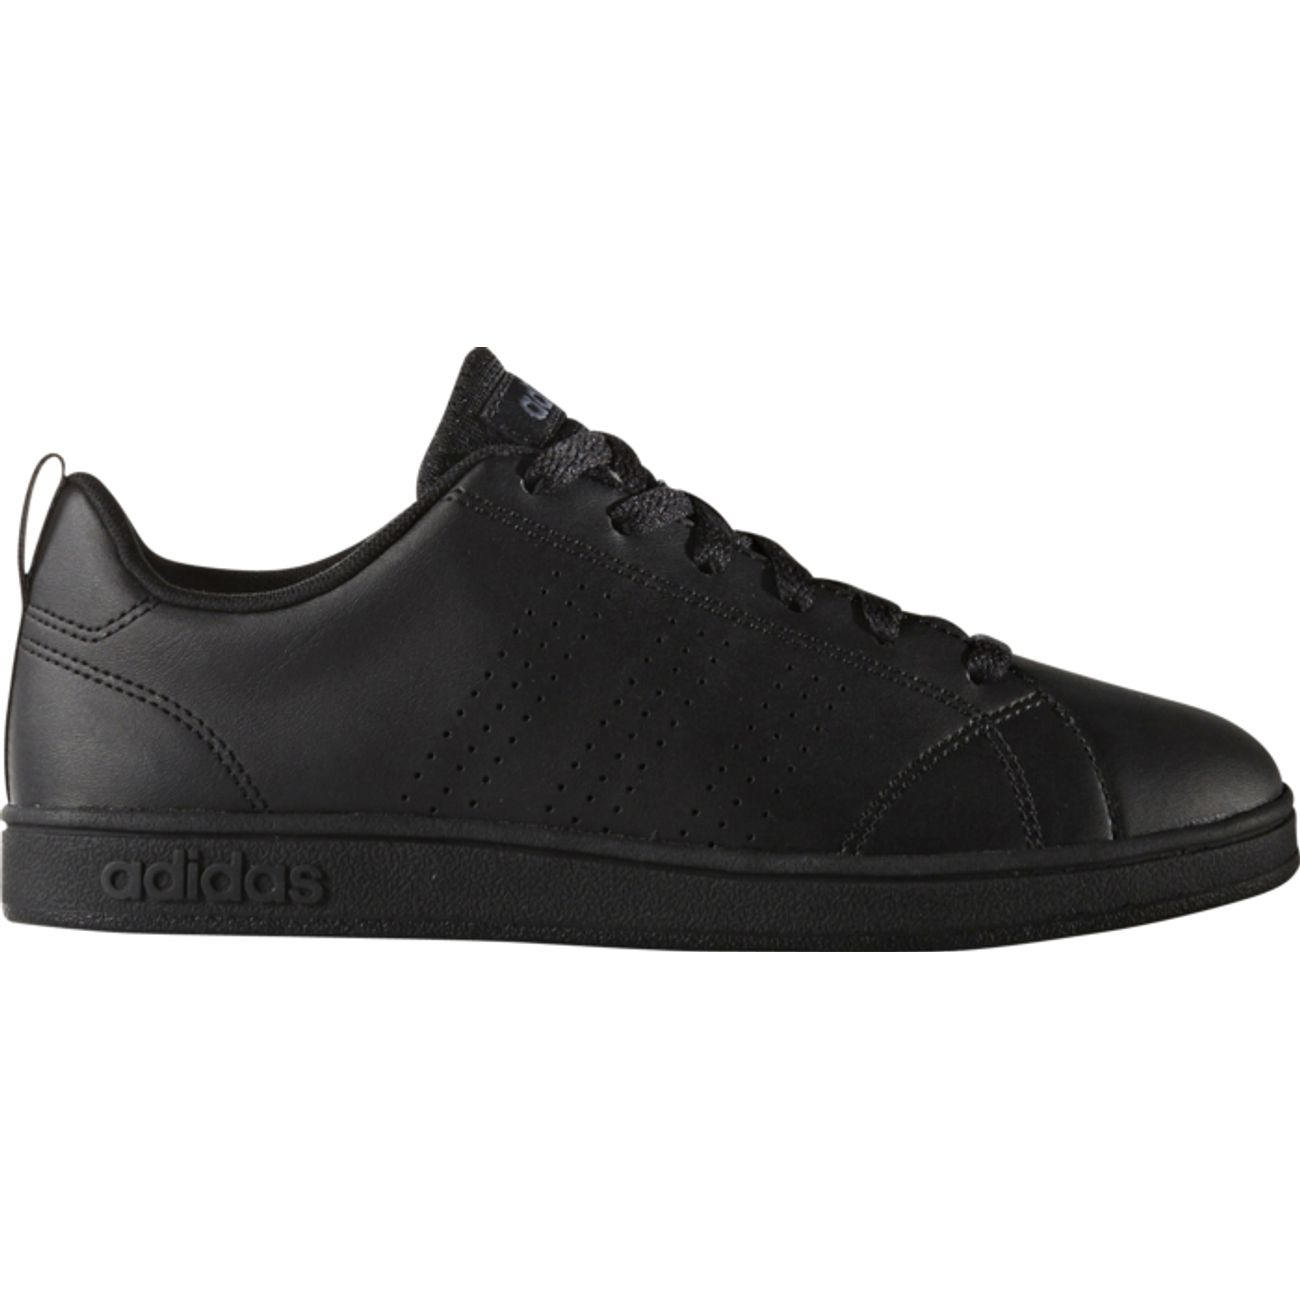 CHAUSSURES BASSES   ADIDAS ADVANTAGE CLEAN